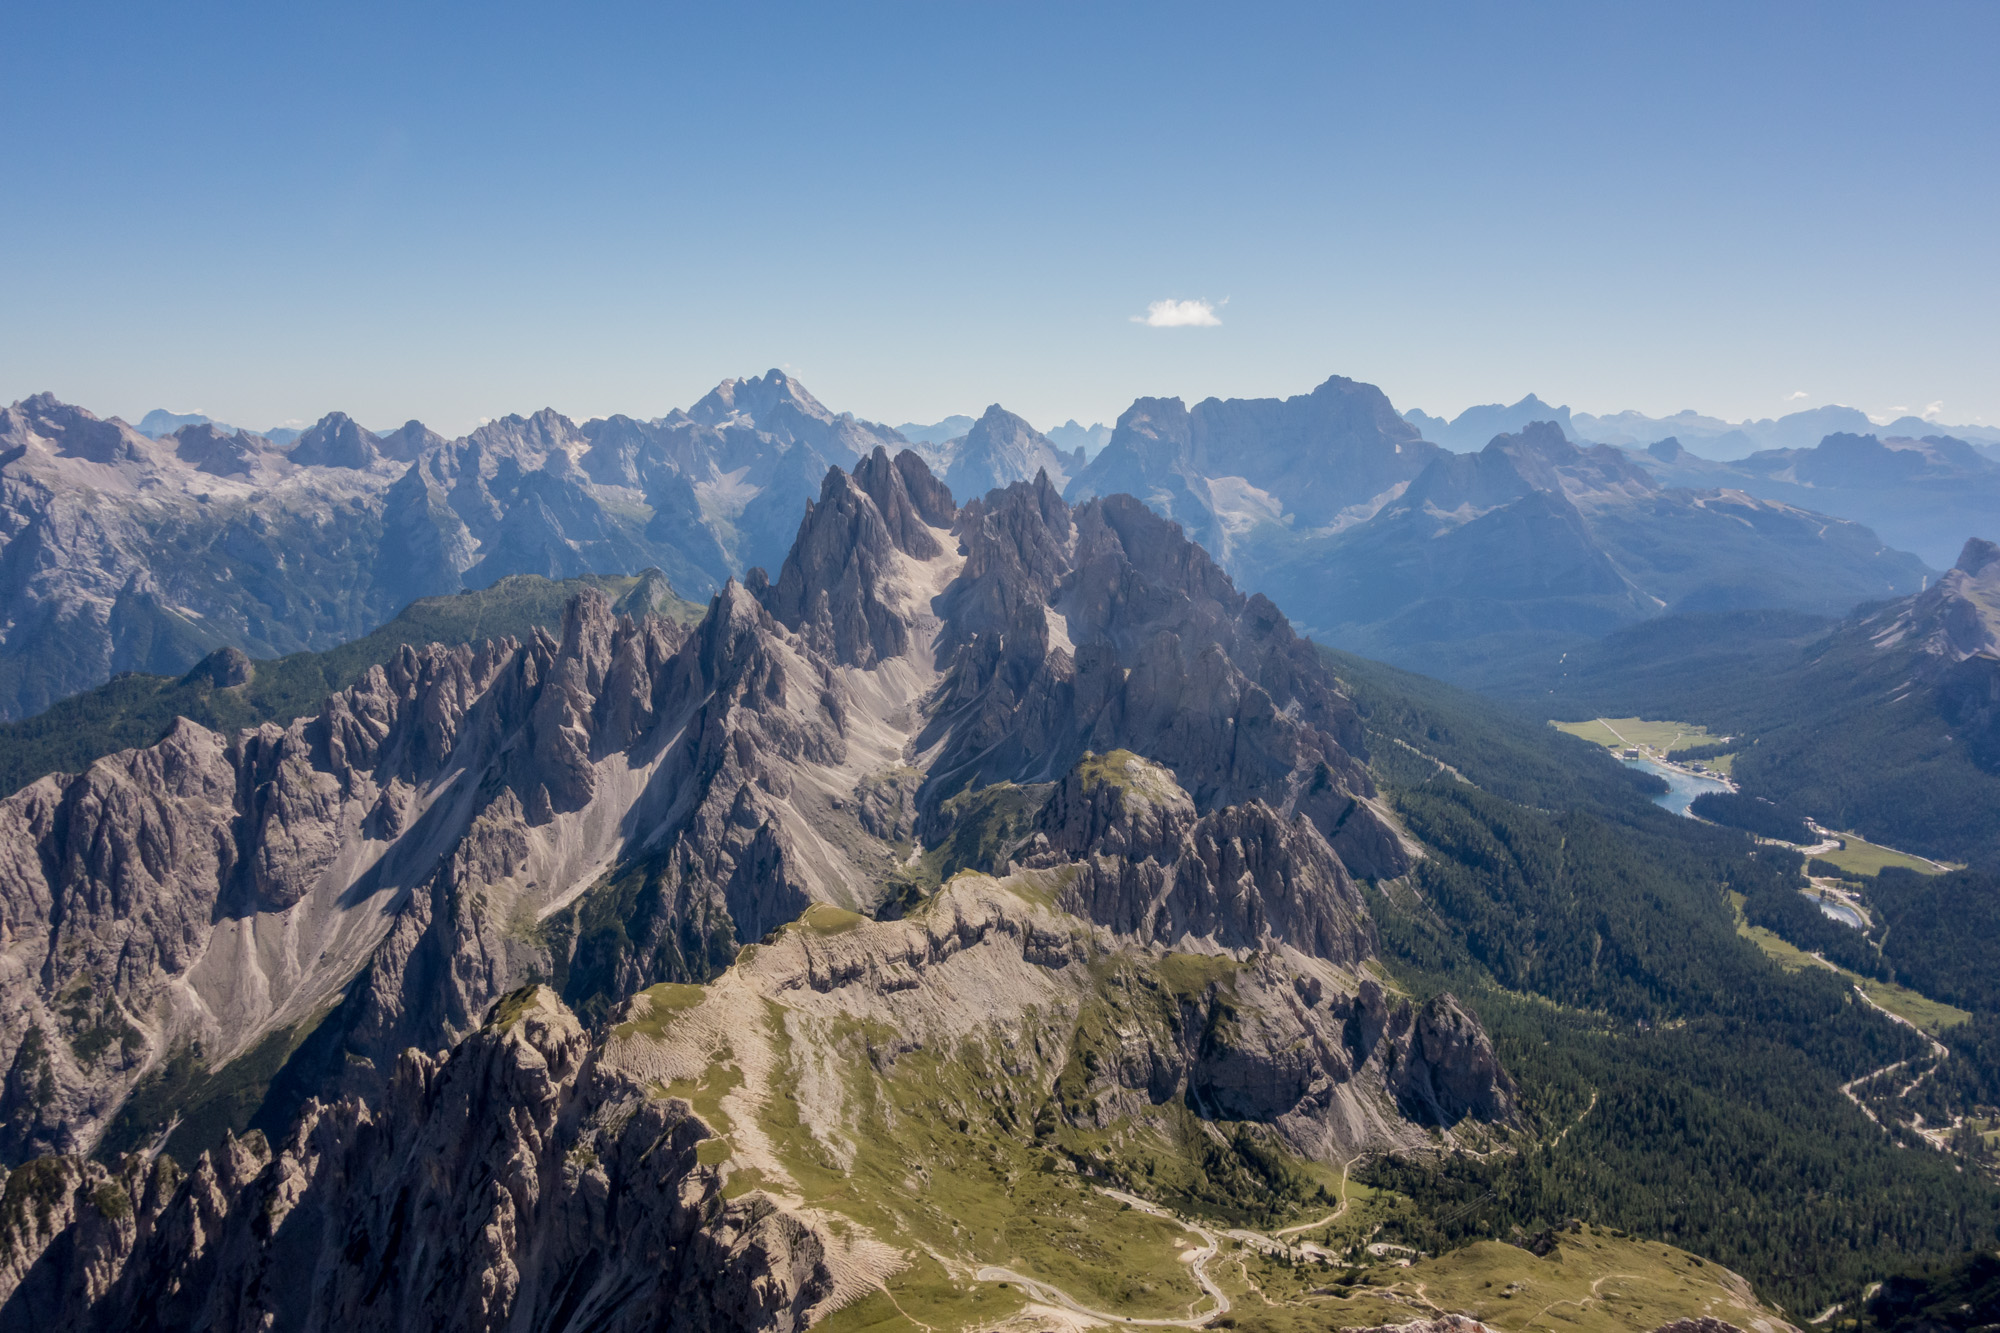 Stunning views south from the summit of Cima Grande towards Cima del Cadin and Lago di Misurina